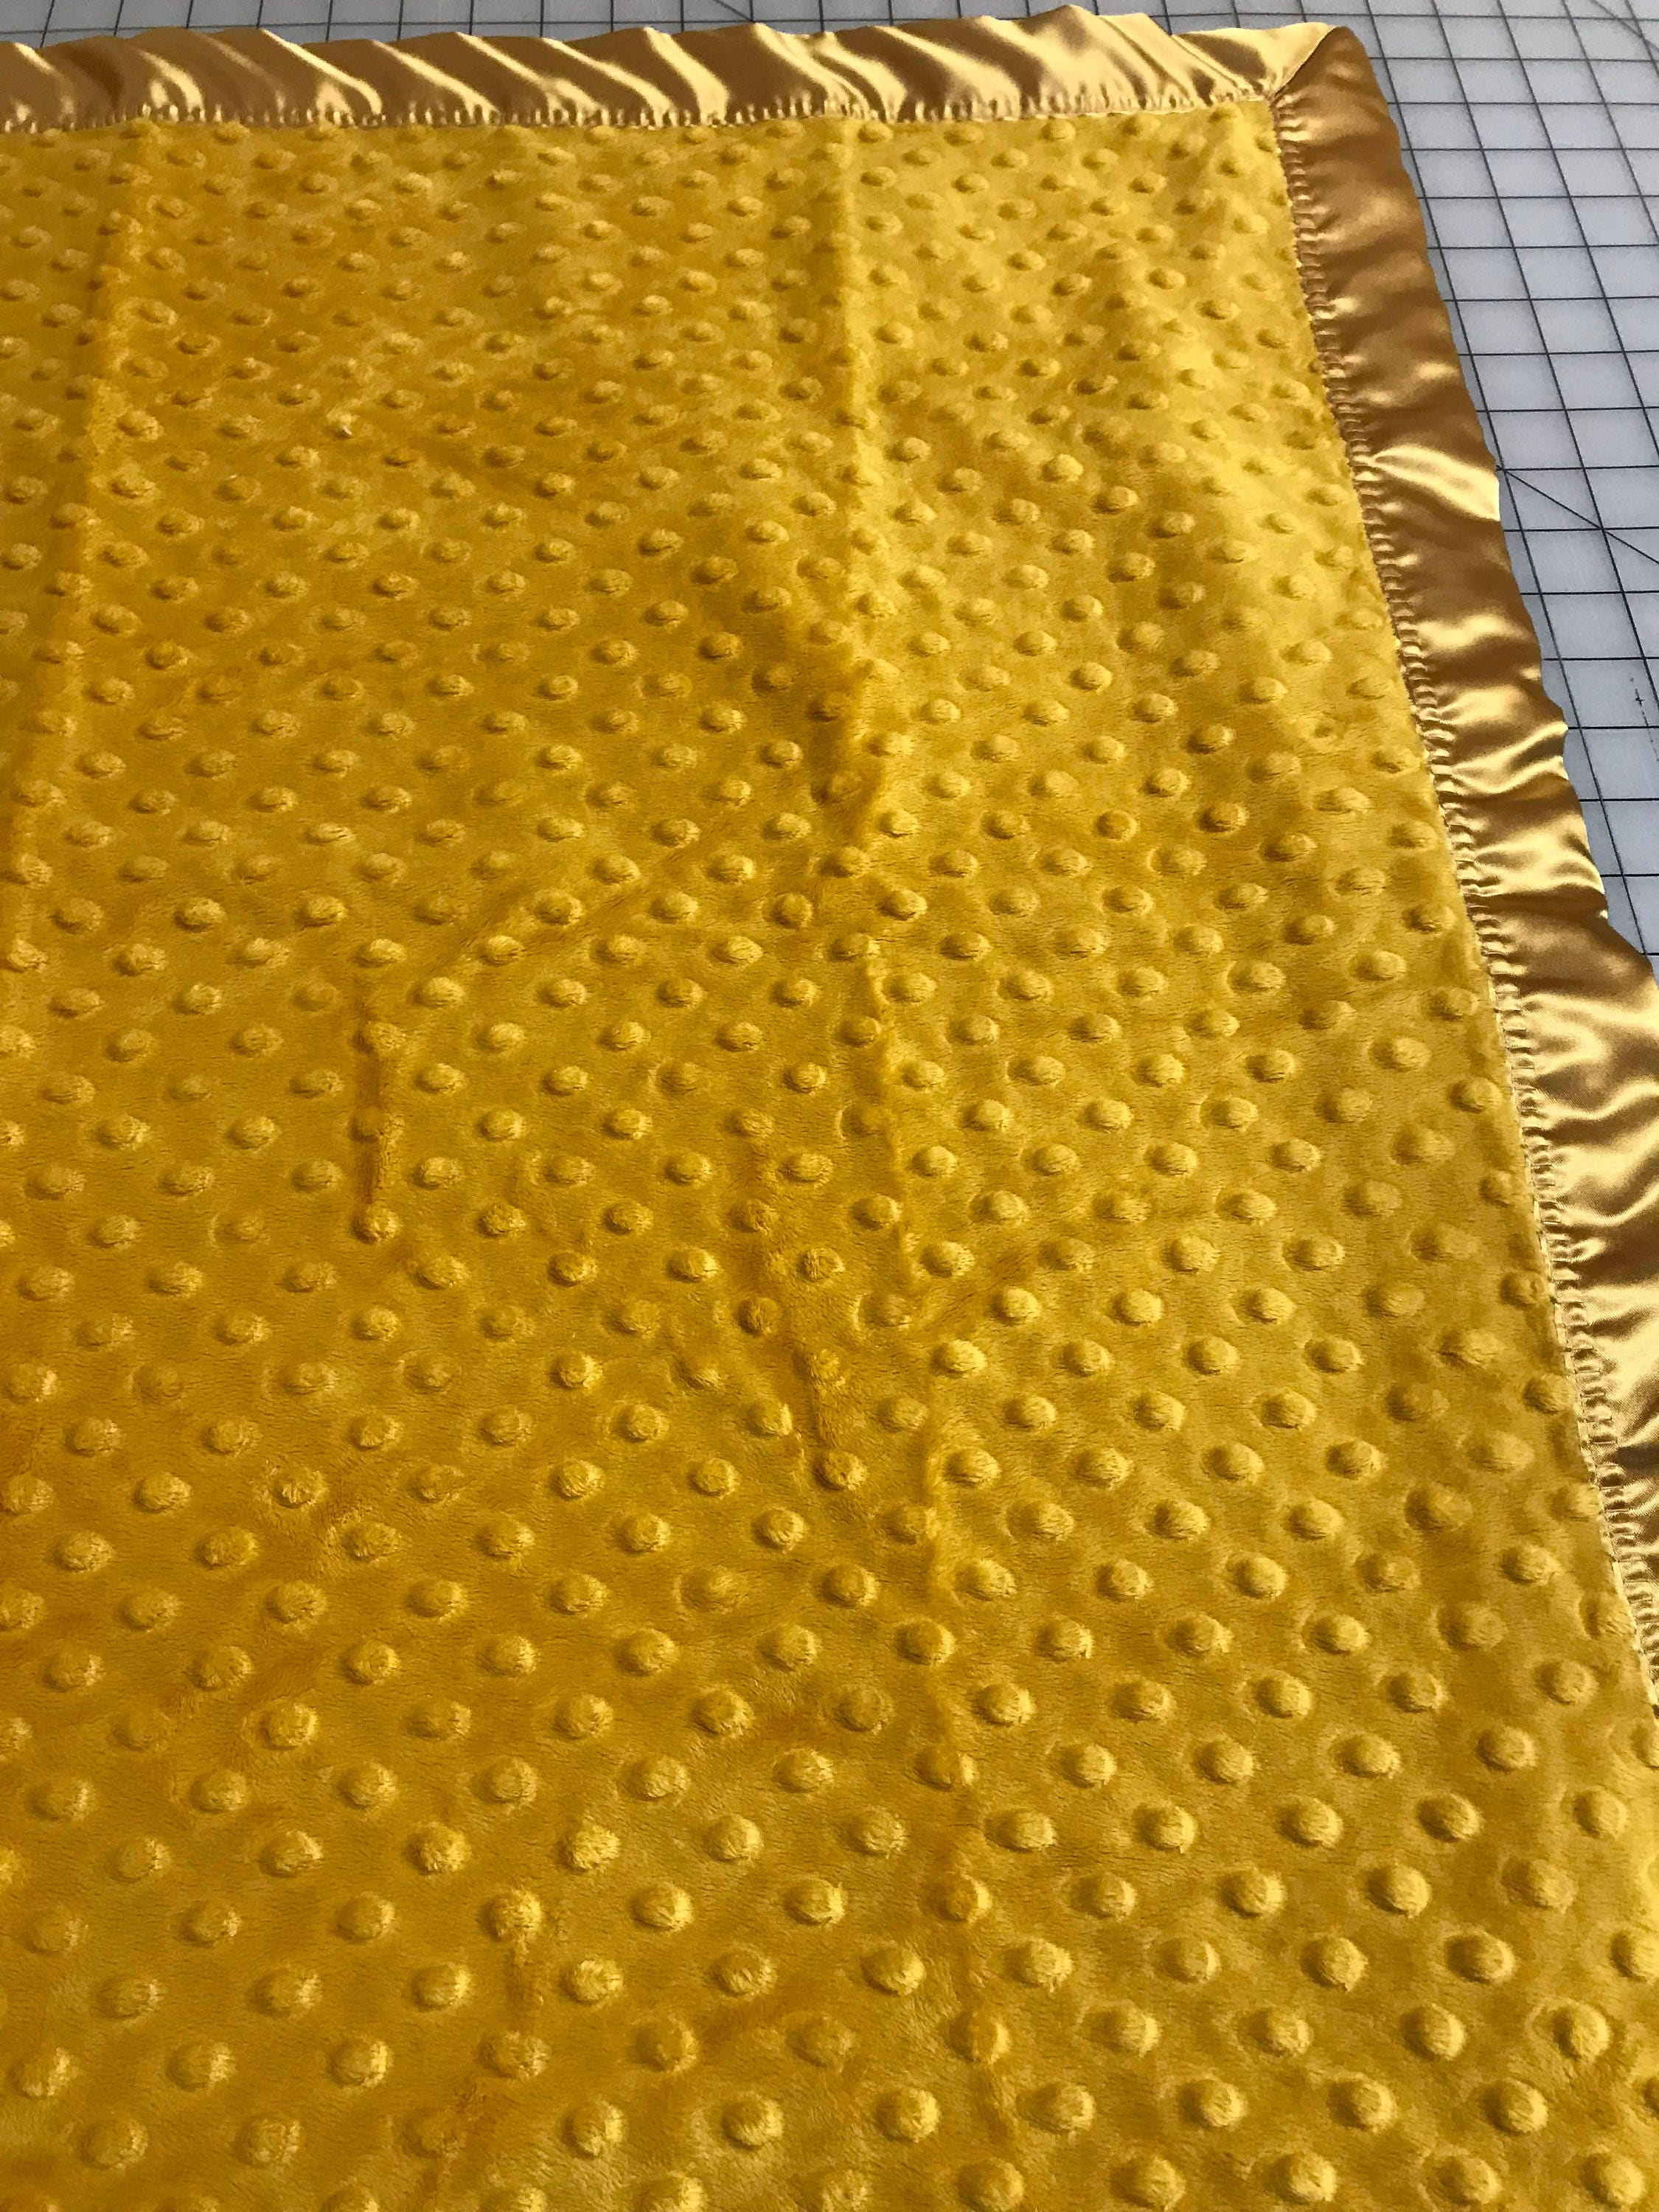 29 X 34 Gold Minky Dot Baby Blanket With Red Satin Backing